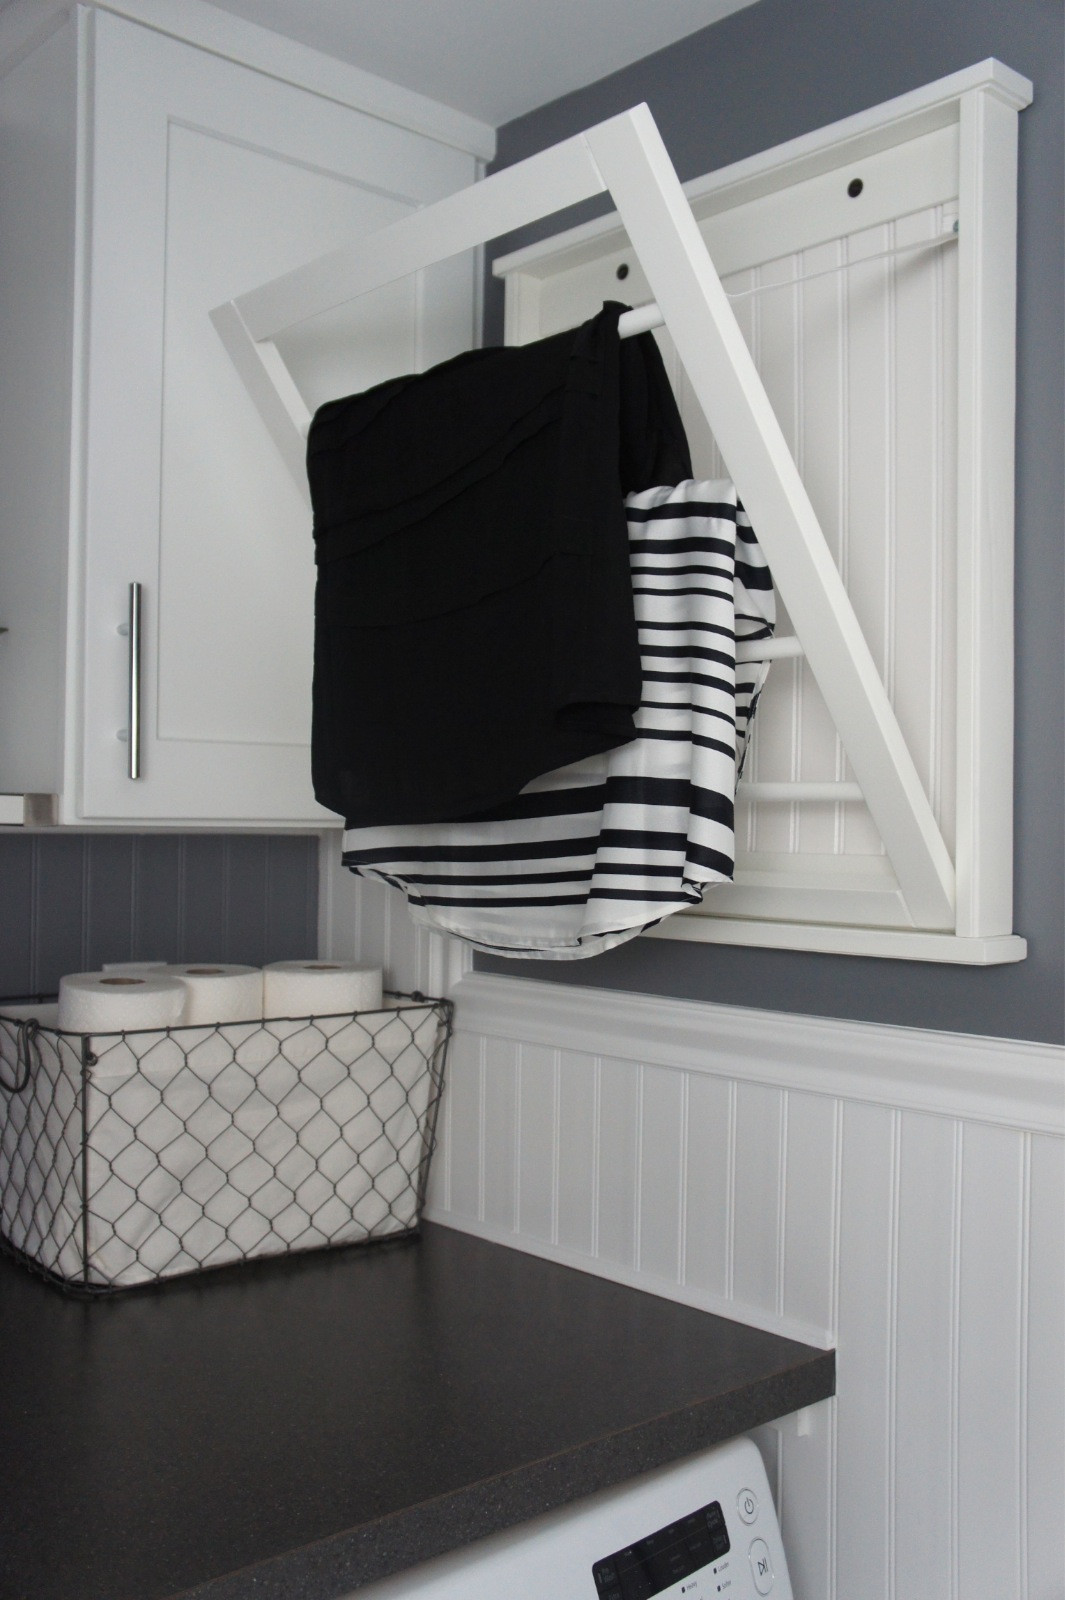 Best ideas about Laundry Room Rack . Save or Pin Home with Baxter House Tour Week 5 Half Bath Laundry Now.